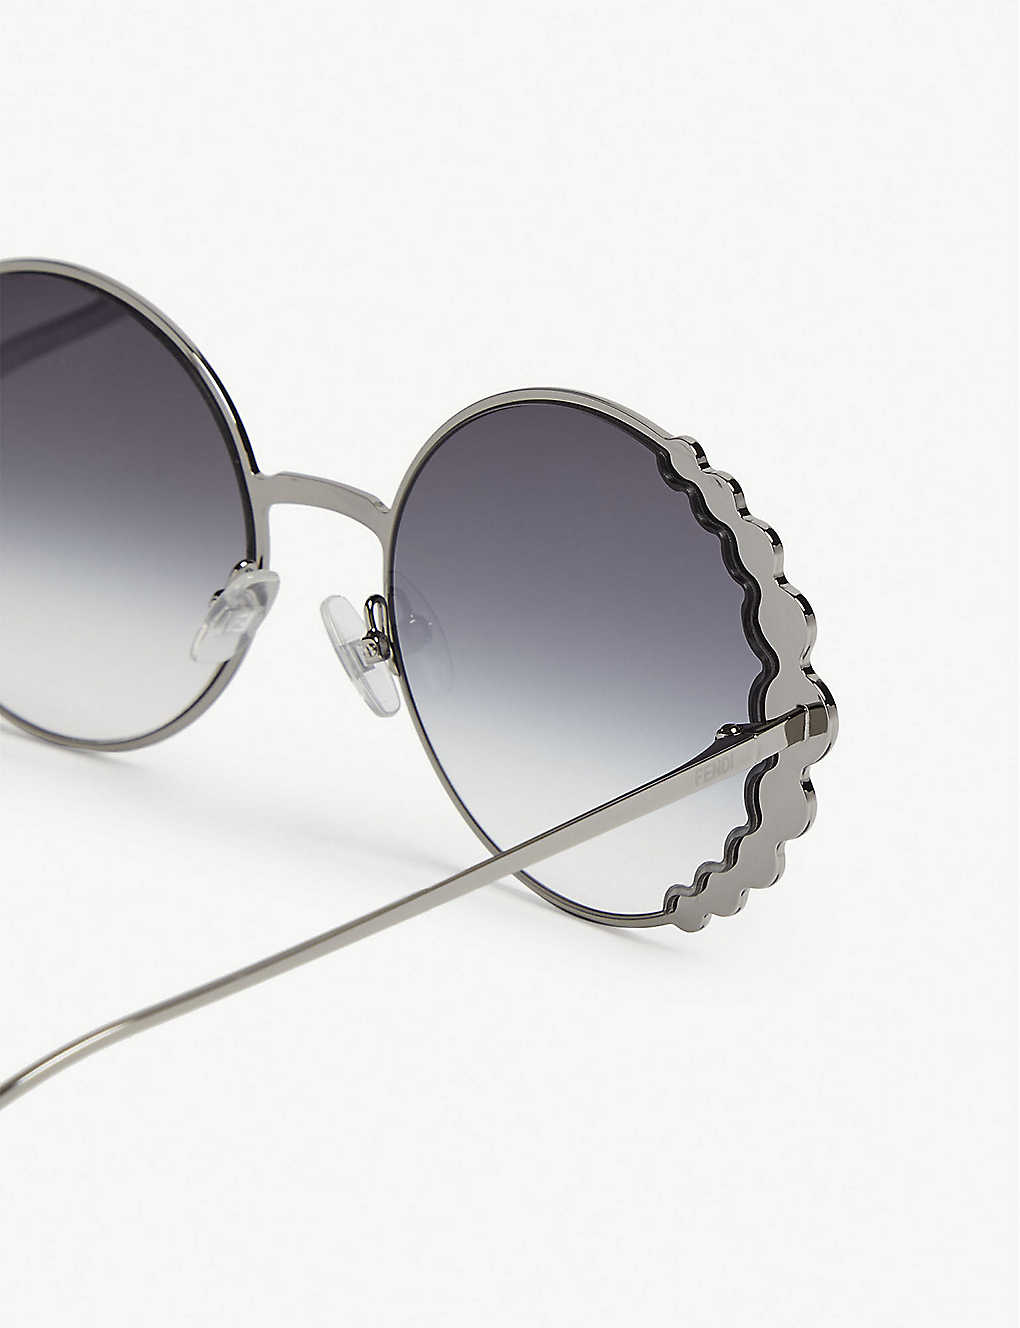 43c5e9b84b ... FF0324 S Ribbons   Crystals round-frame sunglasses - Silver zoom